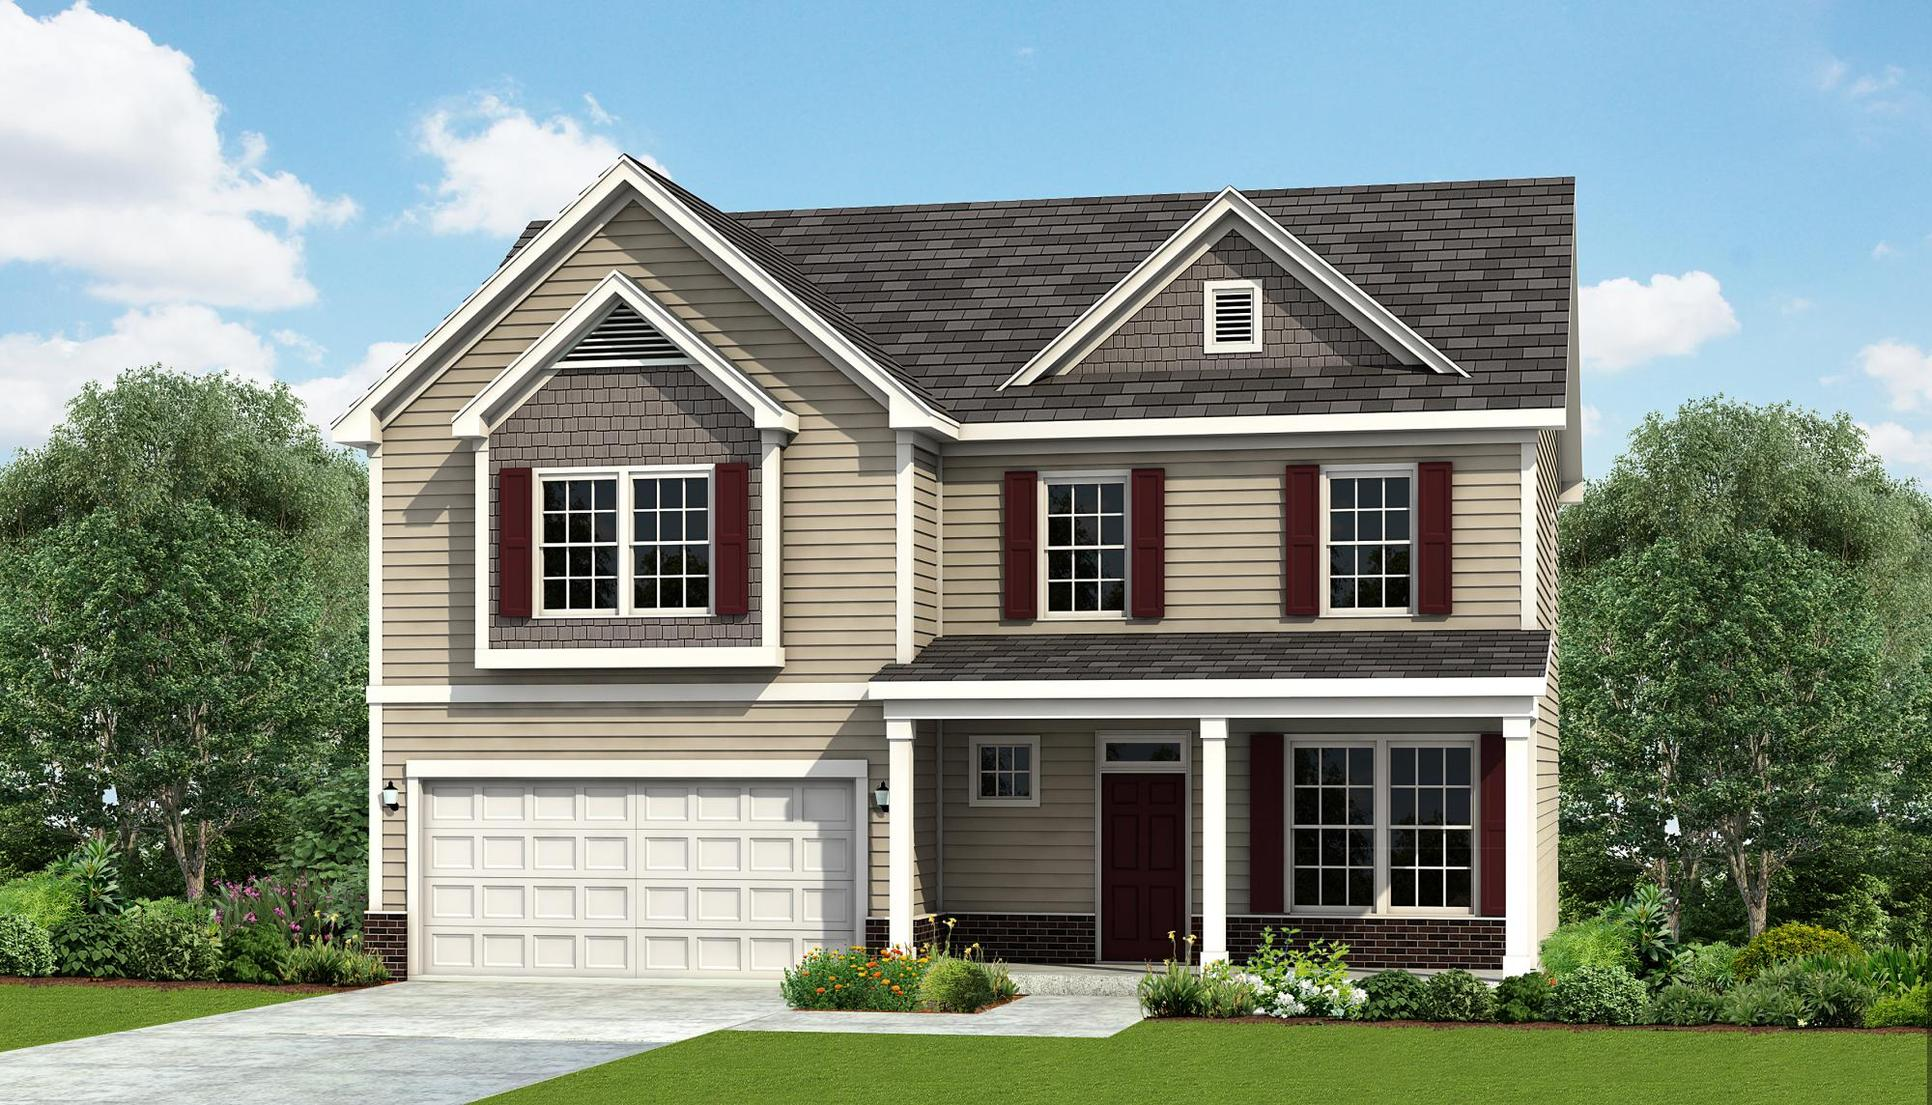 Exterior:Topsail Rendering - Elevation A